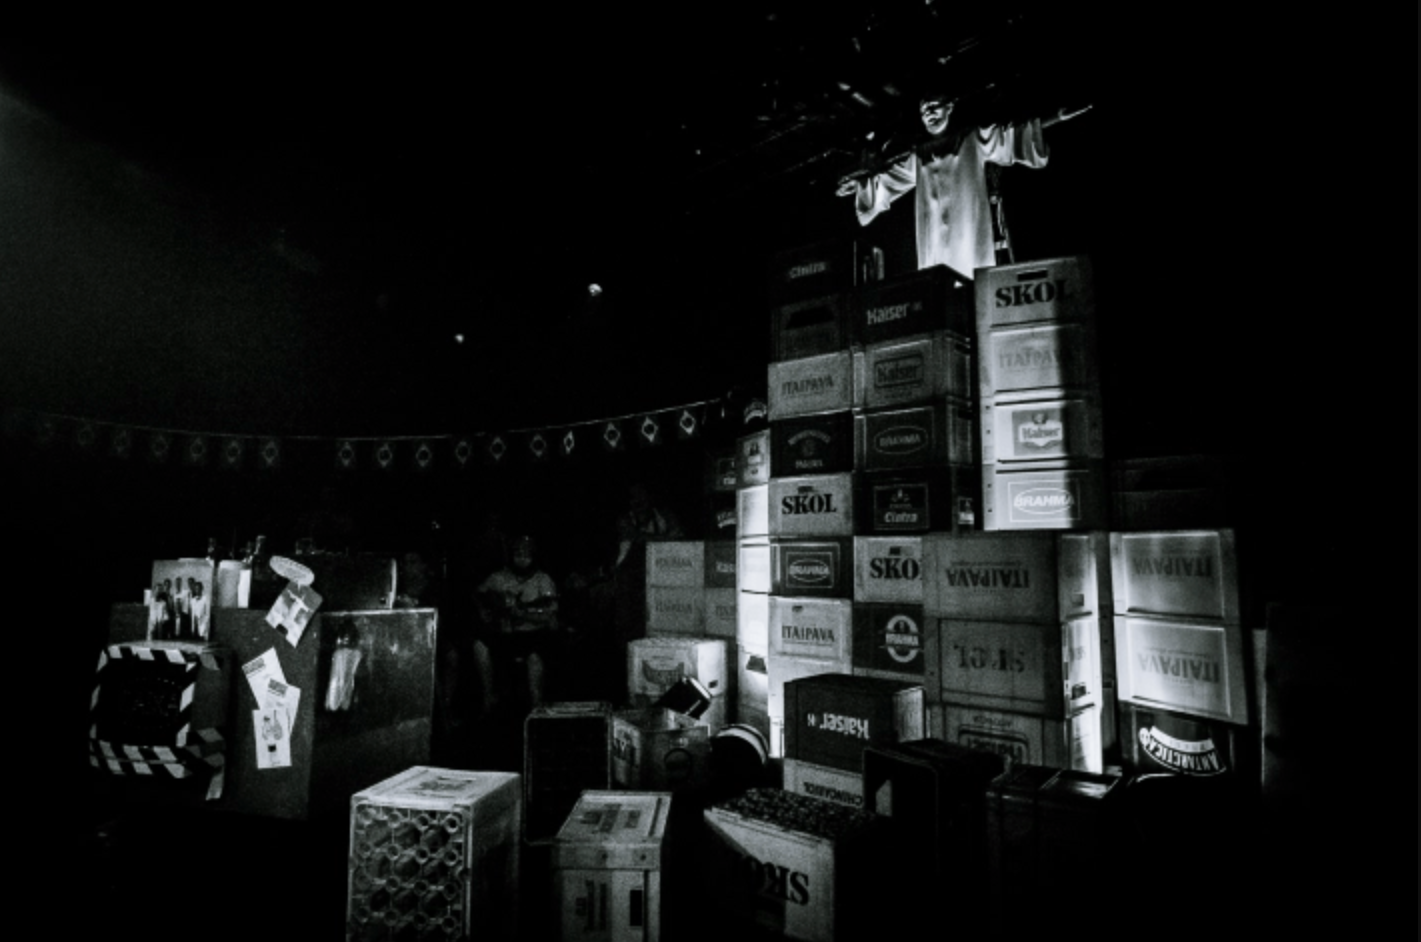 black and white photo of a person with open arms standing on top of a pile of crates